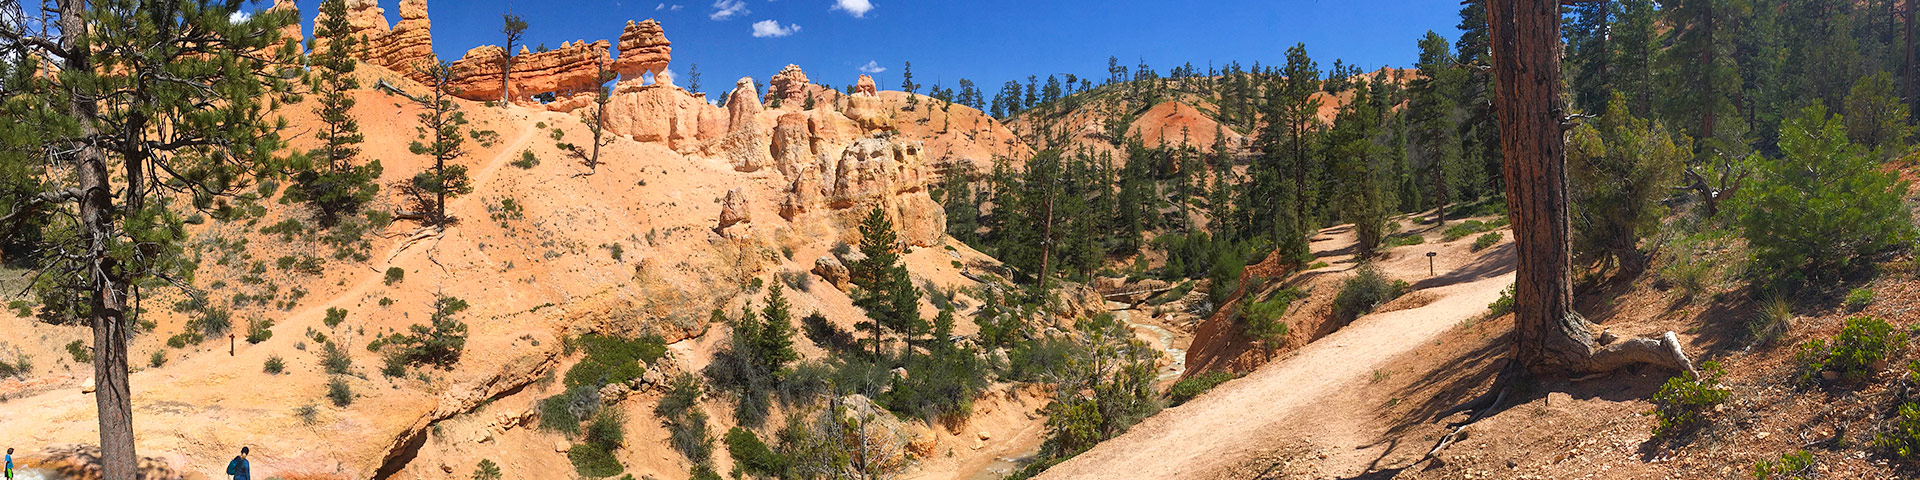 Views from the Mossy Caves hike in Bryce Canyon National Park, Utah